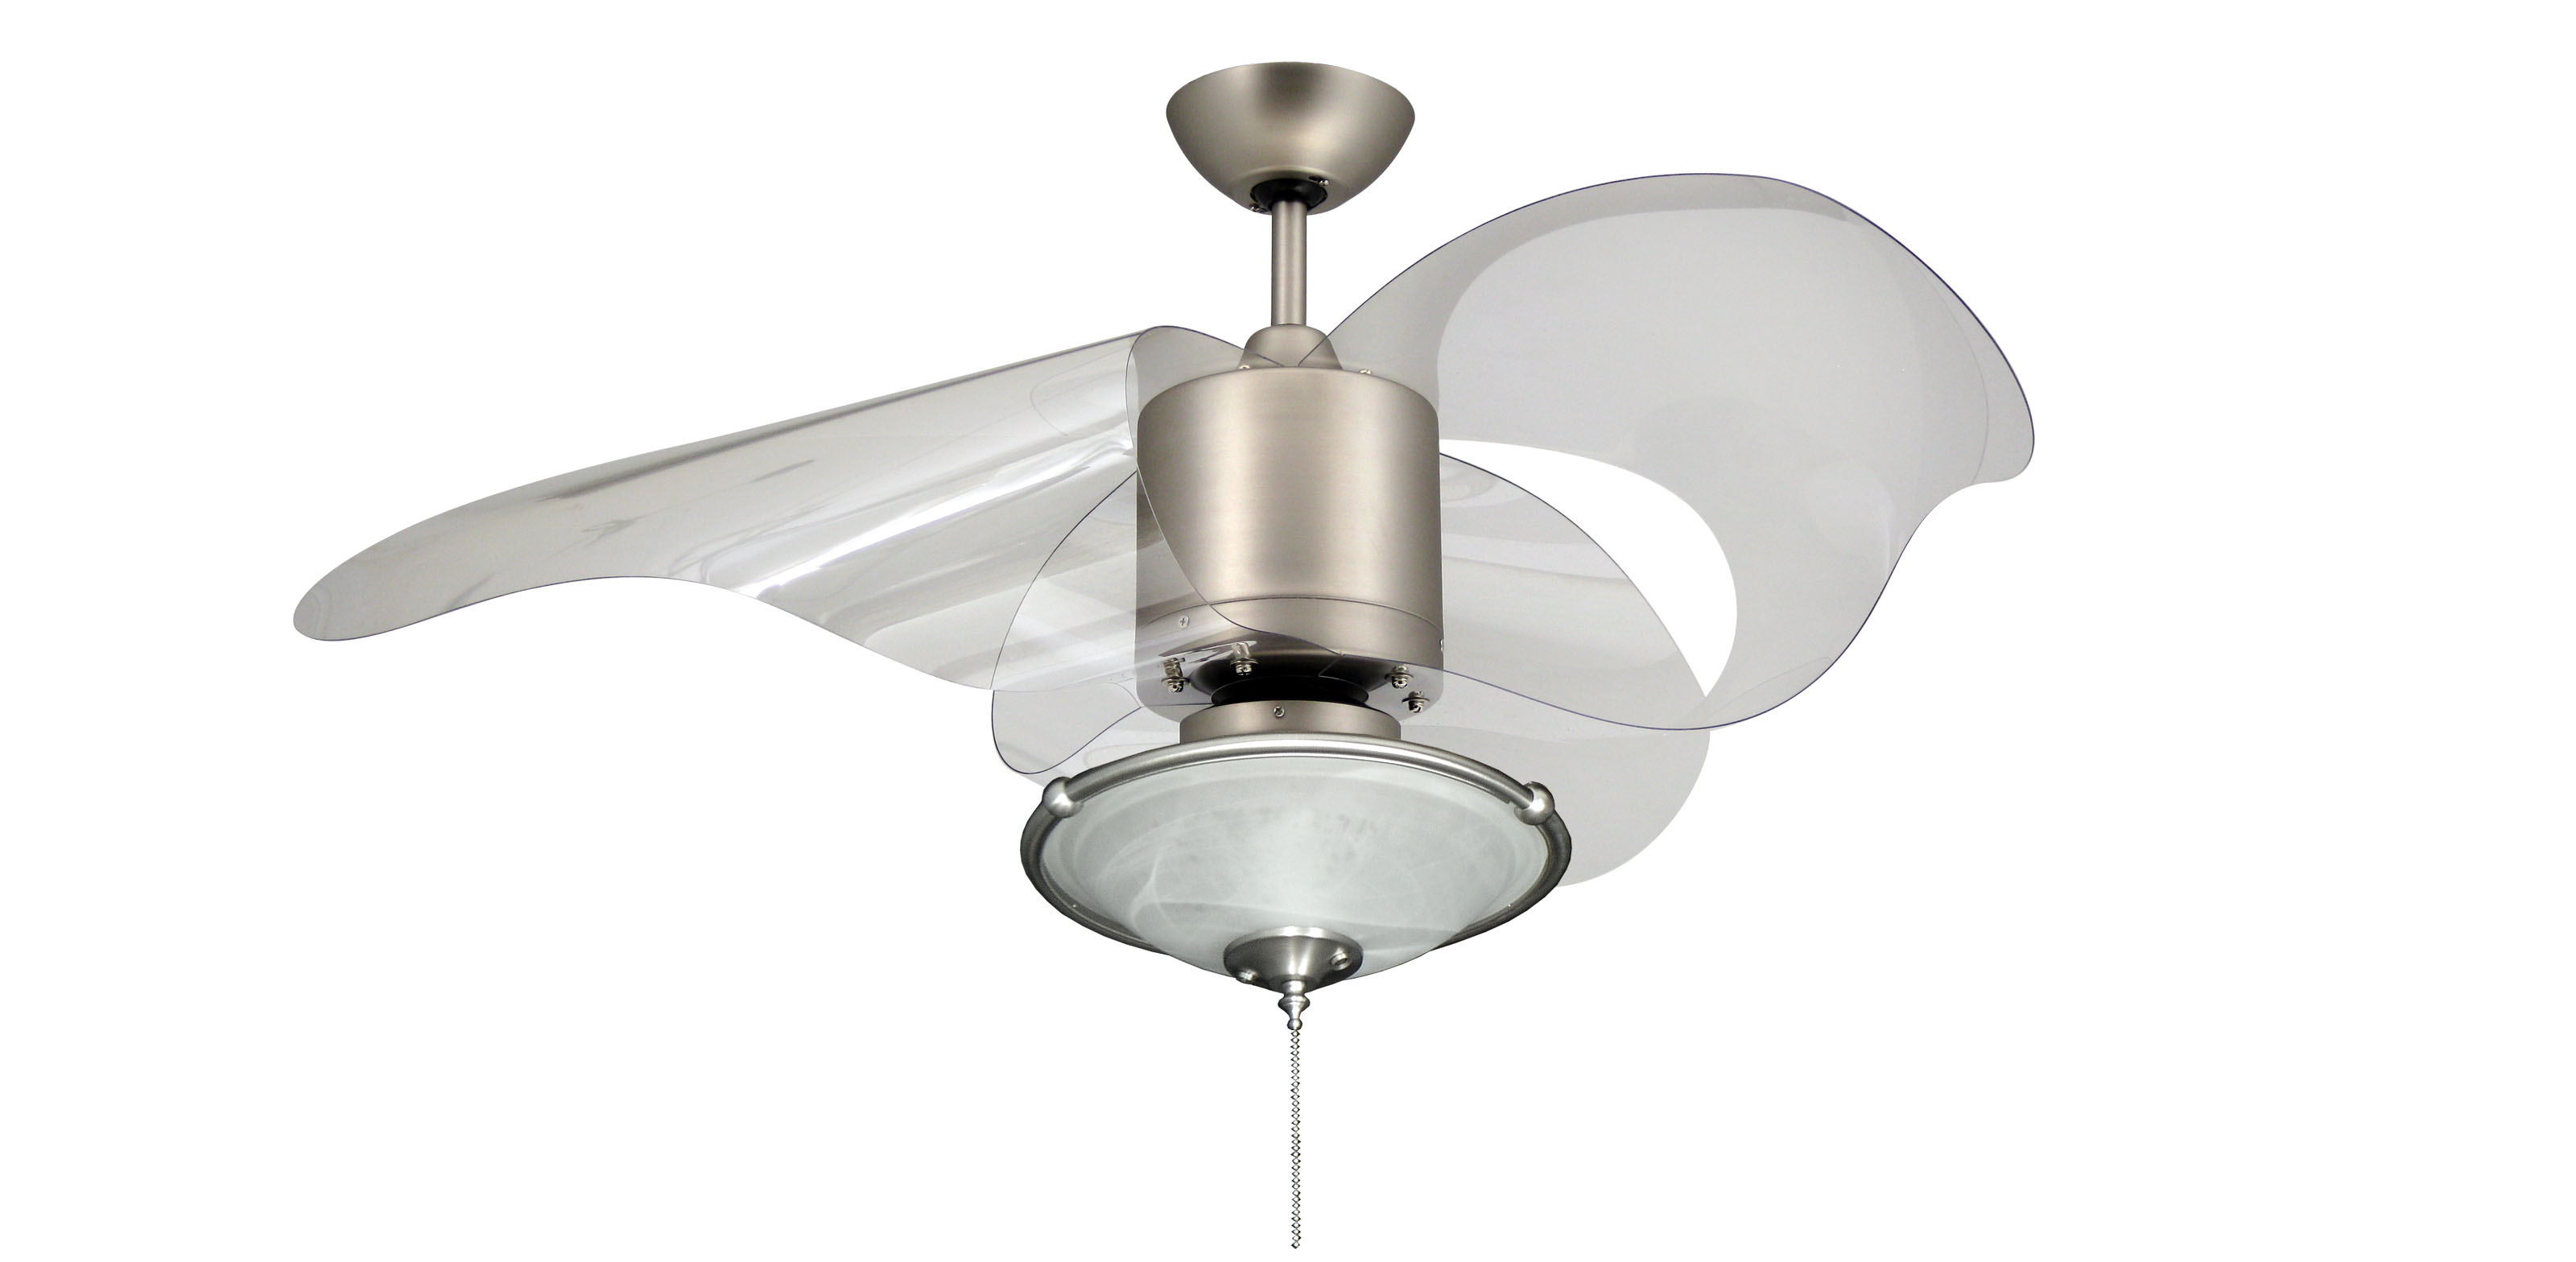 Fullsize Of Ceiling Fan Blades